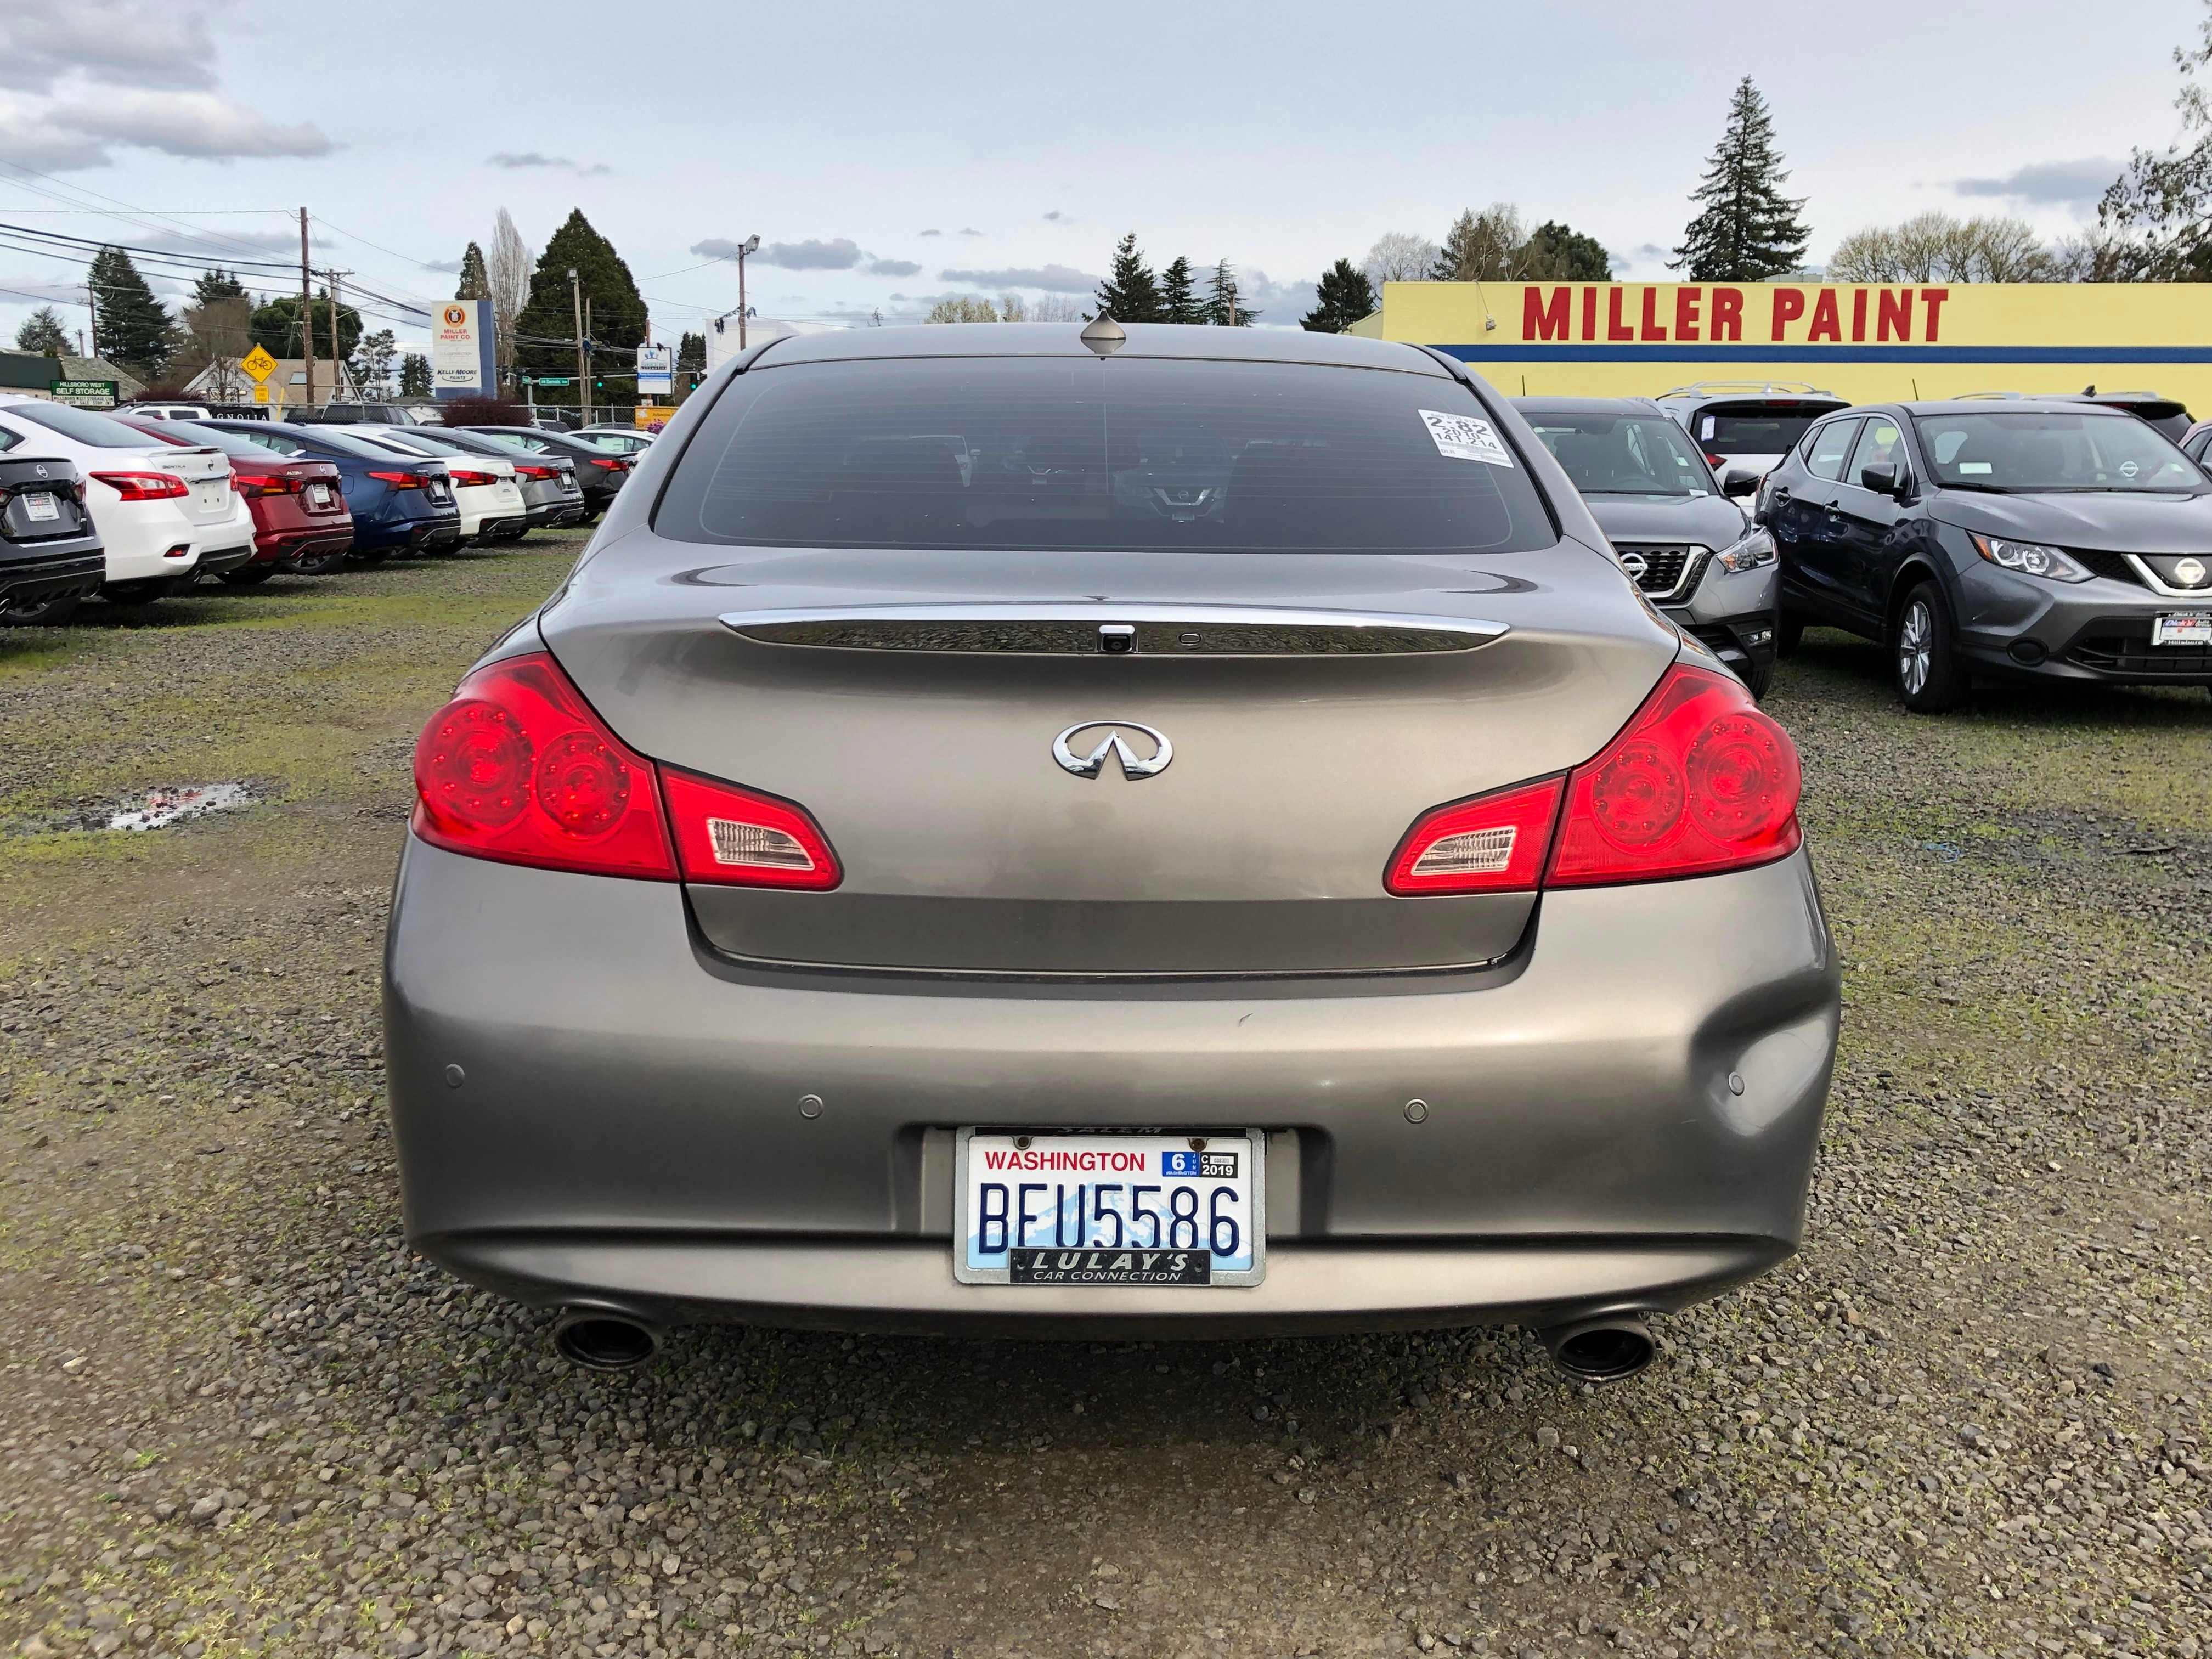 Pre-Owned 2010 INFINITI G37x Base